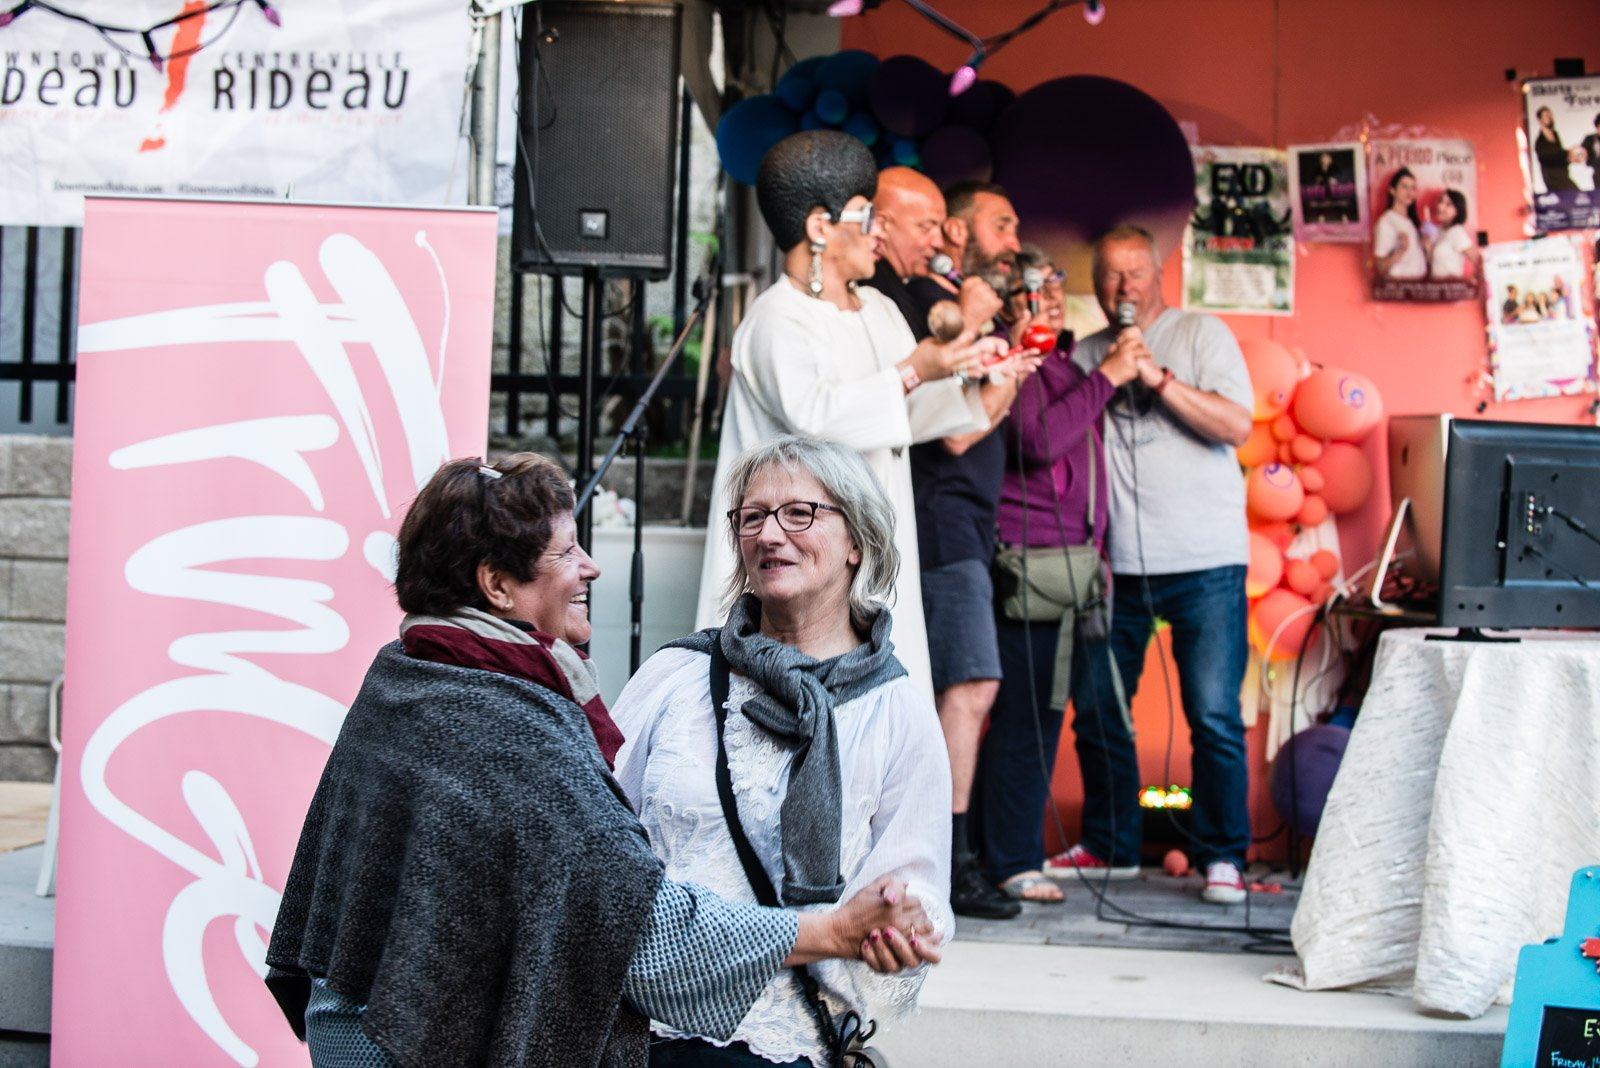 Two festival goers dance together as a group sings karaoke at Ottawa Fringe Festival in 2019.